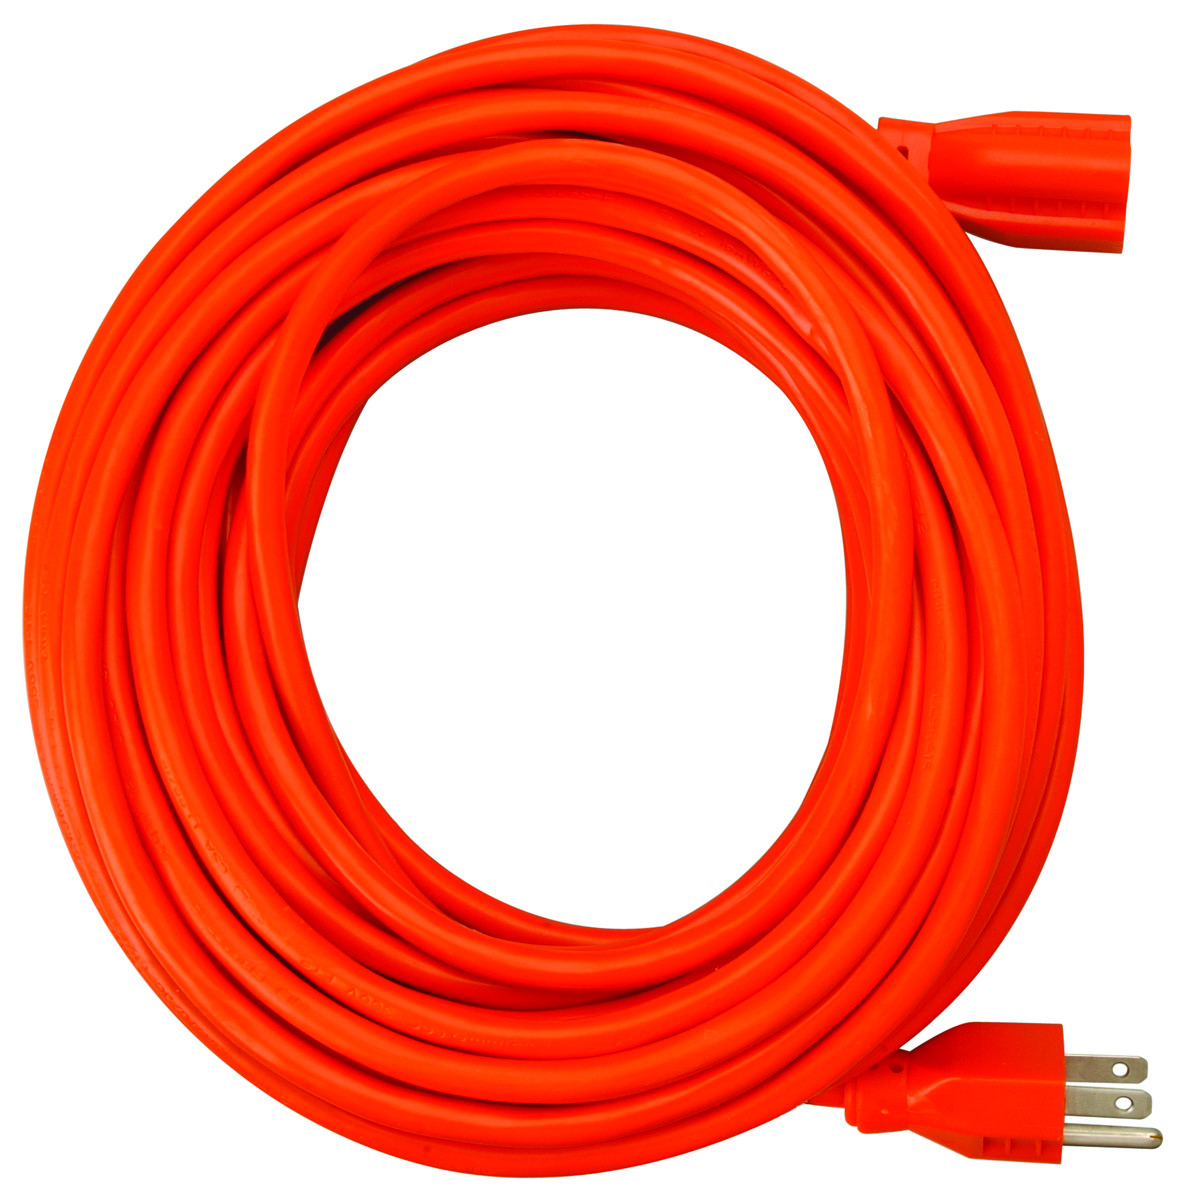 Coleman Cable 0517 50 Foot 10/3 Sjtw Extension Cord Org ...